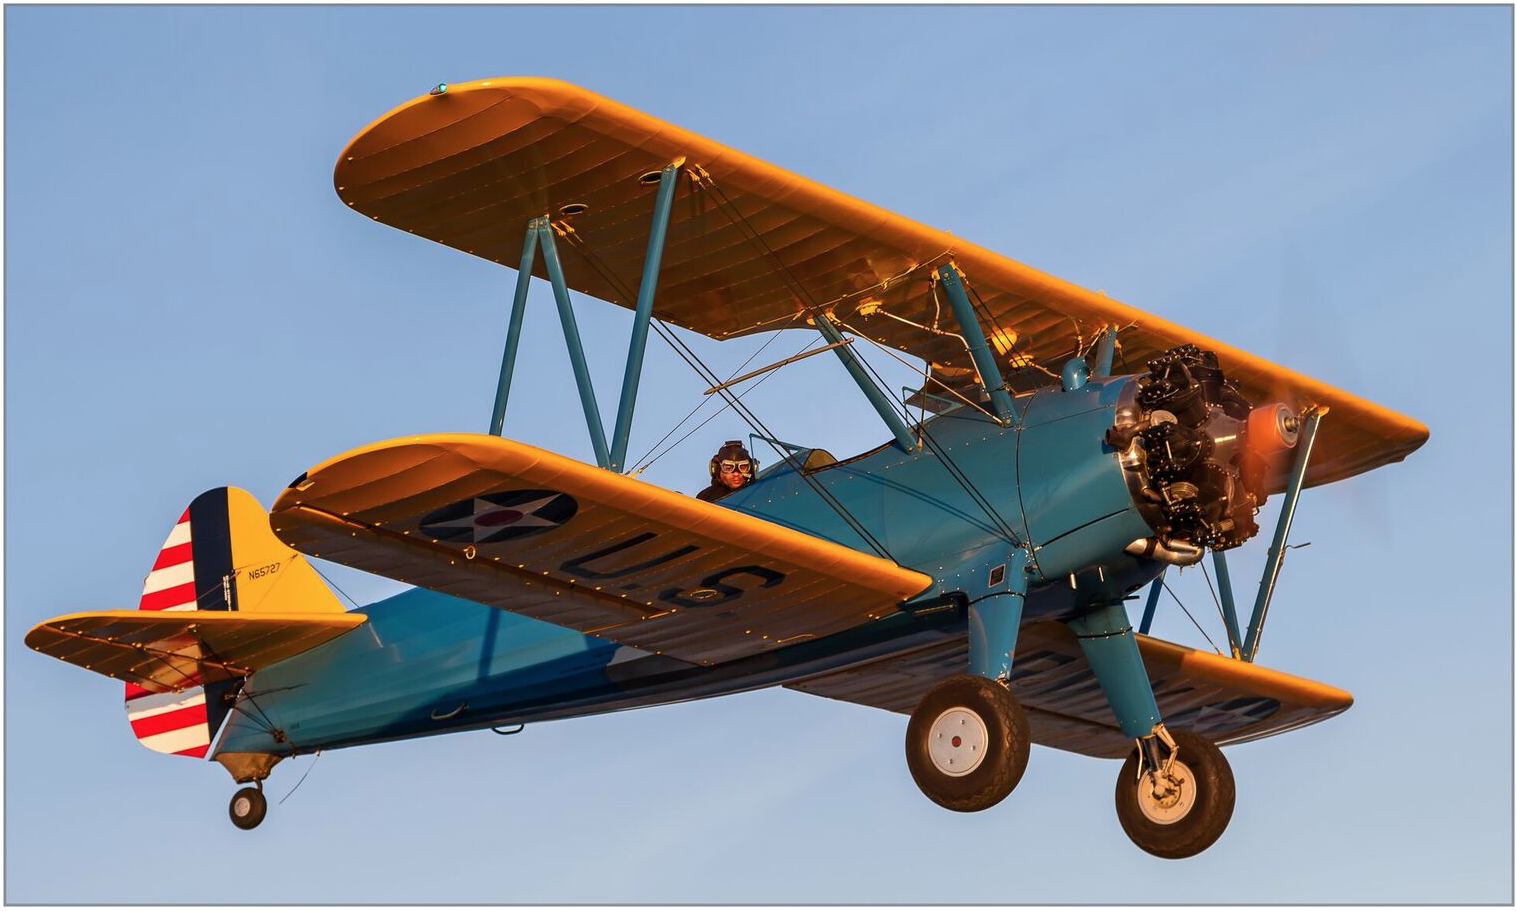 SOARING WITH THE WARBIRDS - RIDE/MEMBERSHIP PROGRAM - PURCHASE TICKETS ONLINE AT:  https://warbirdflights.online  or call 541-460-5067